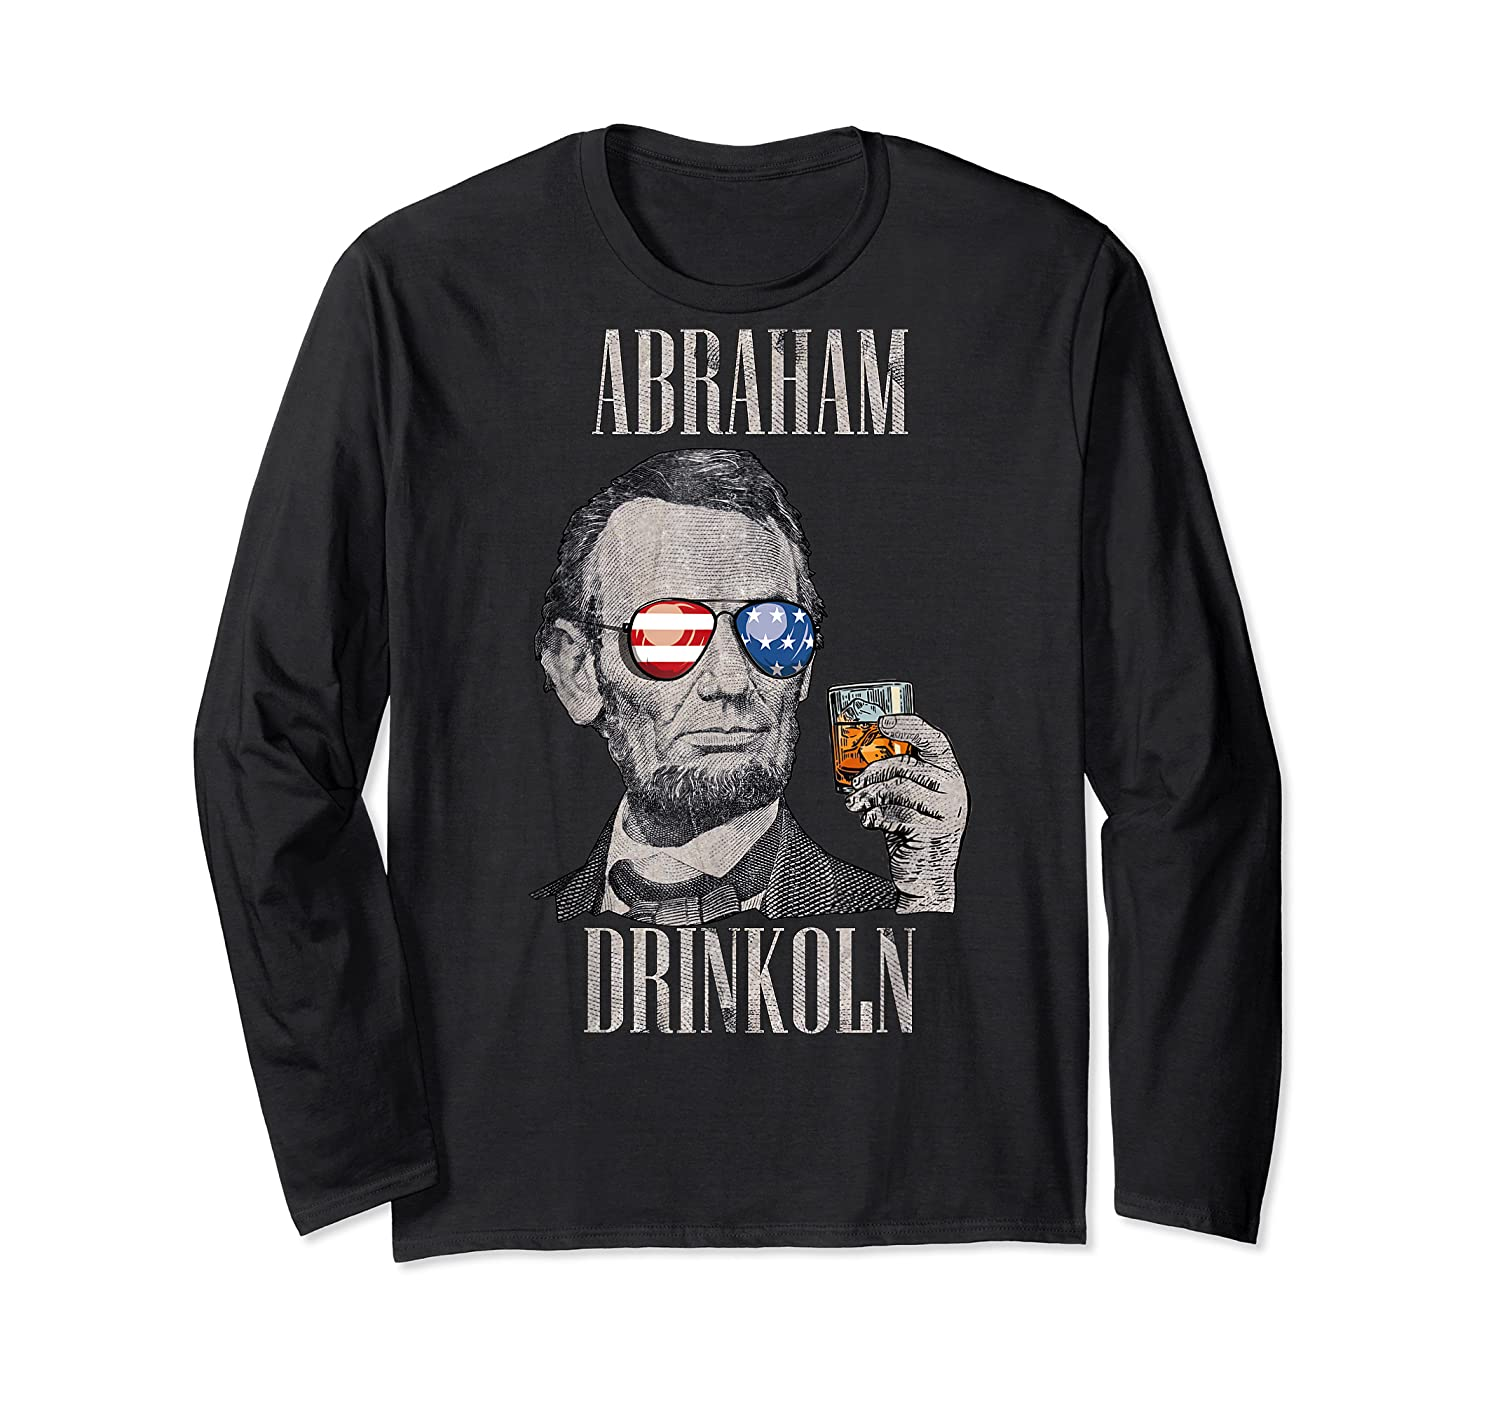 4th Of July Shirts For Abraham Drinkoln Abe Lincoln Tee T Shirt Long Sleeve T-shirt